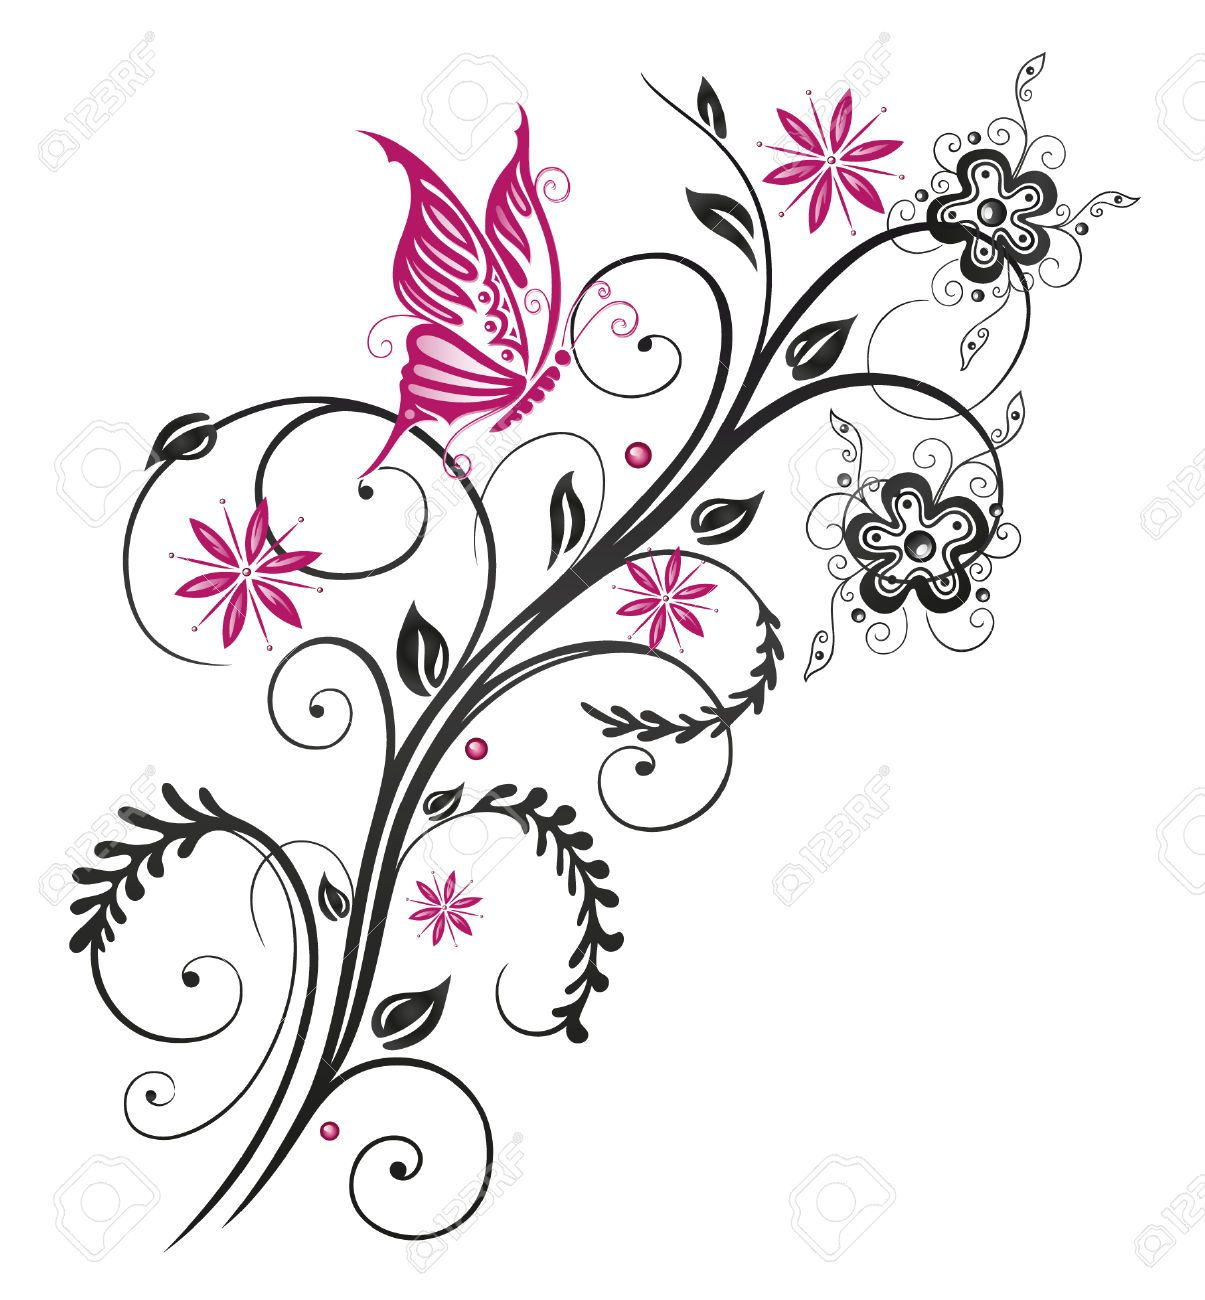 Fashion Printed T-Shirts Flowers with Swirled Branches Butterflies in Watercolor